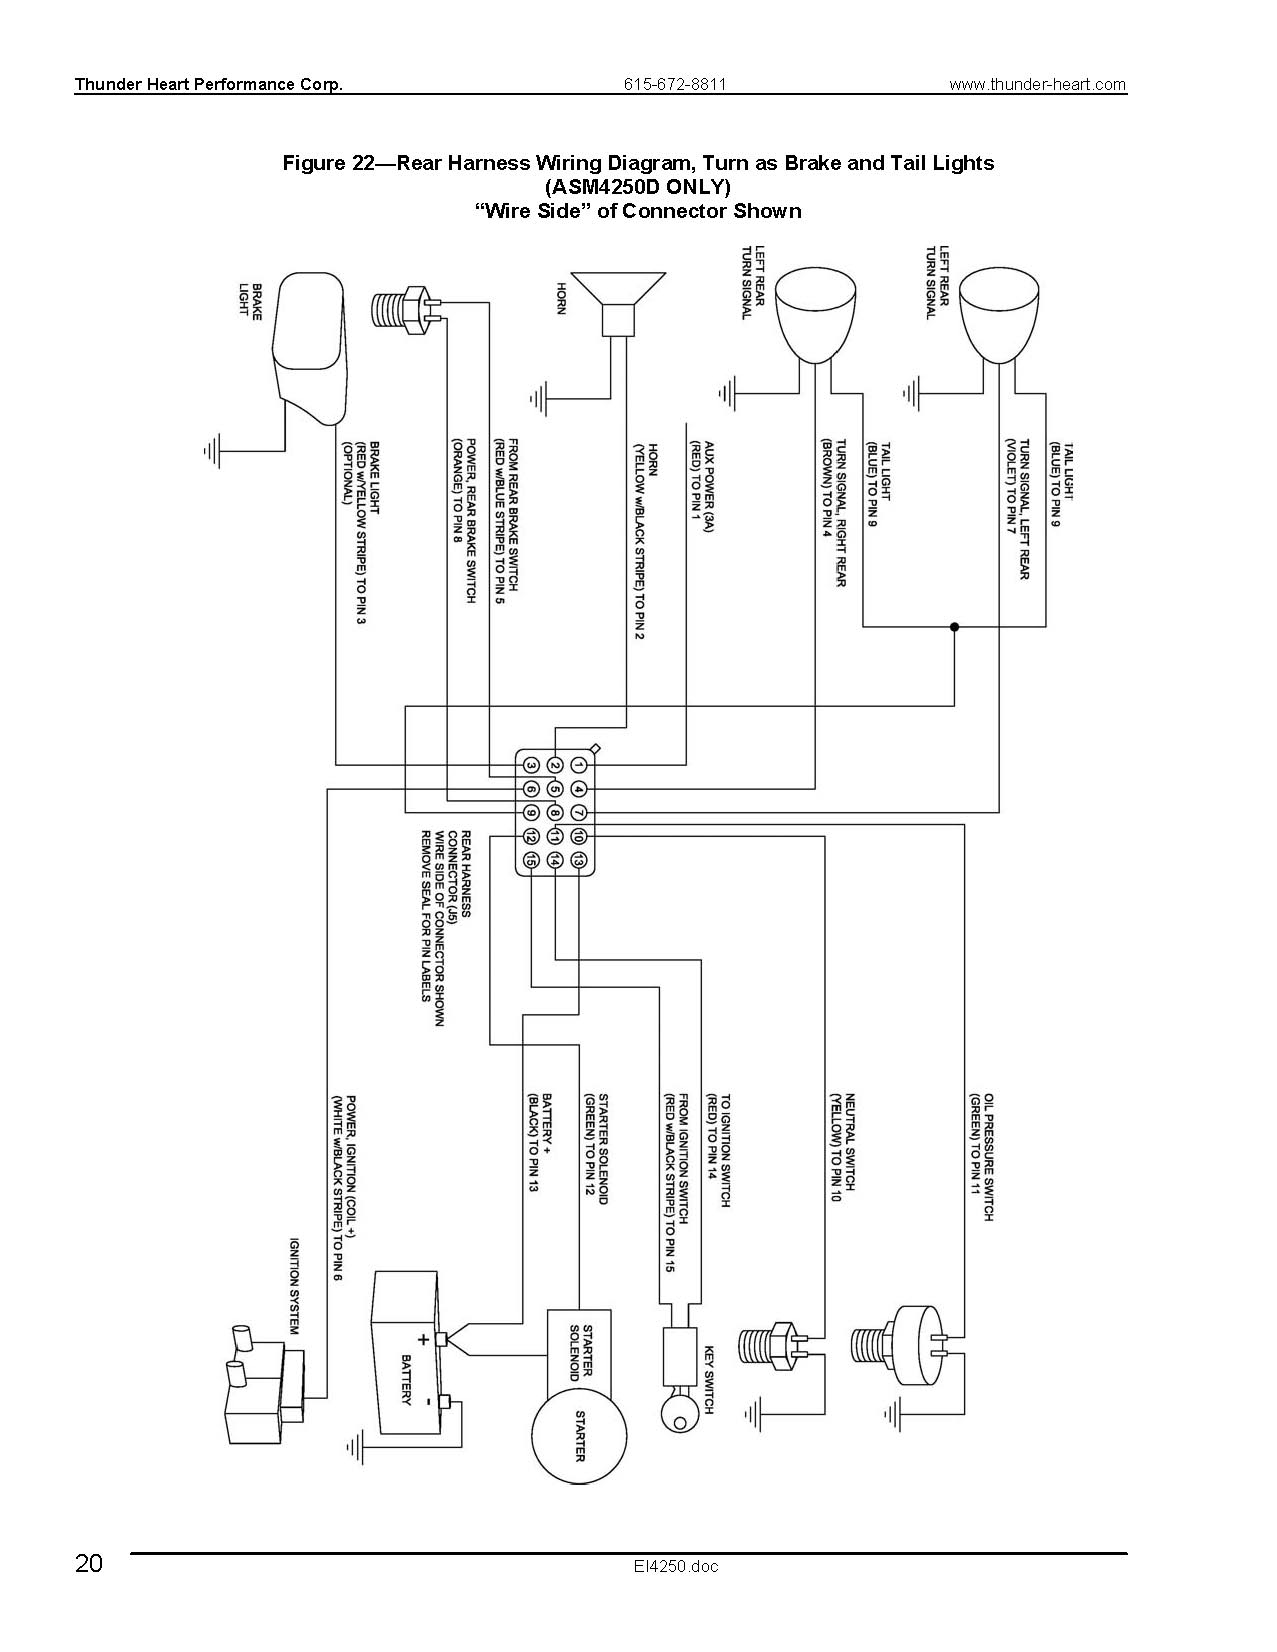 thunderheart wire diagram  thunderheart  free engine image